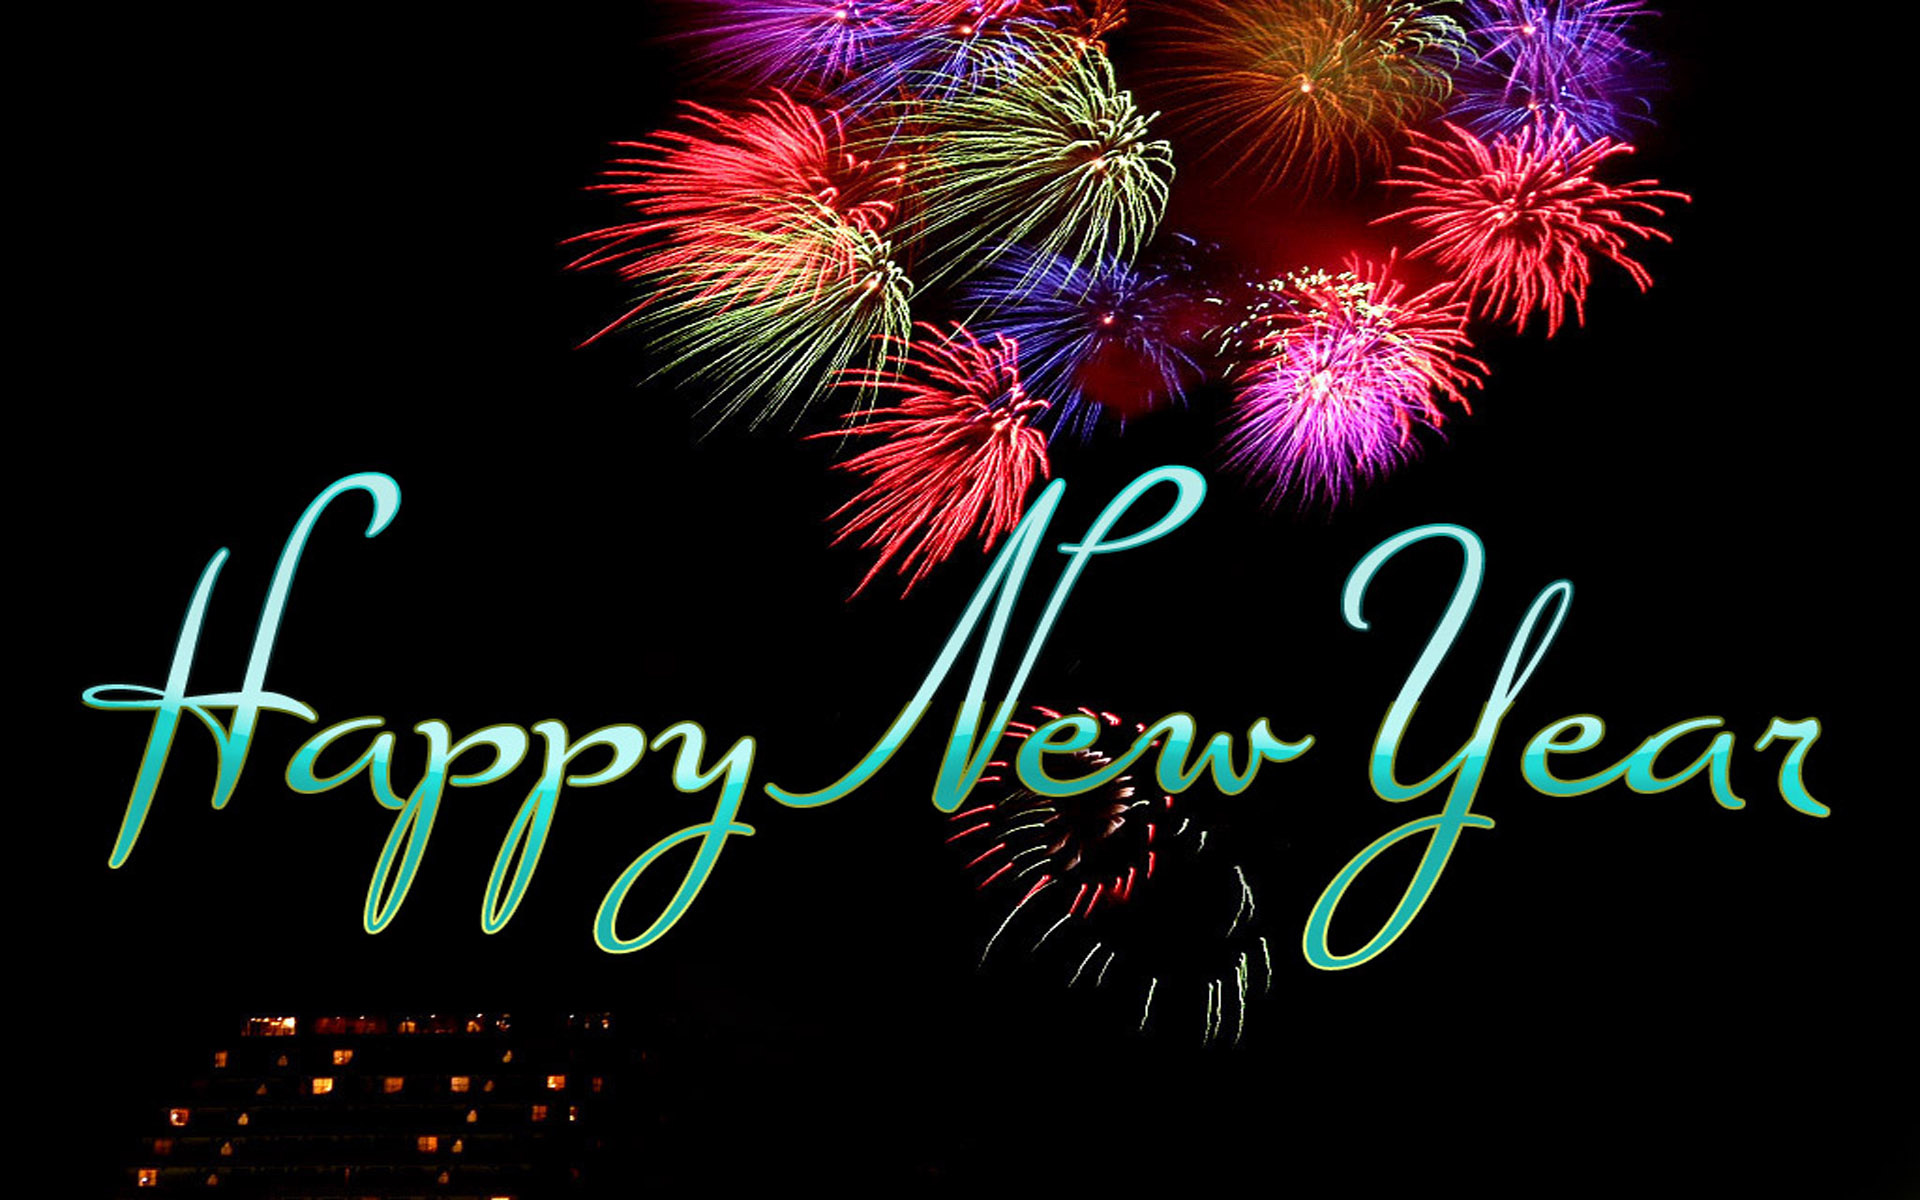 Happy New Year! Here's to 2014…